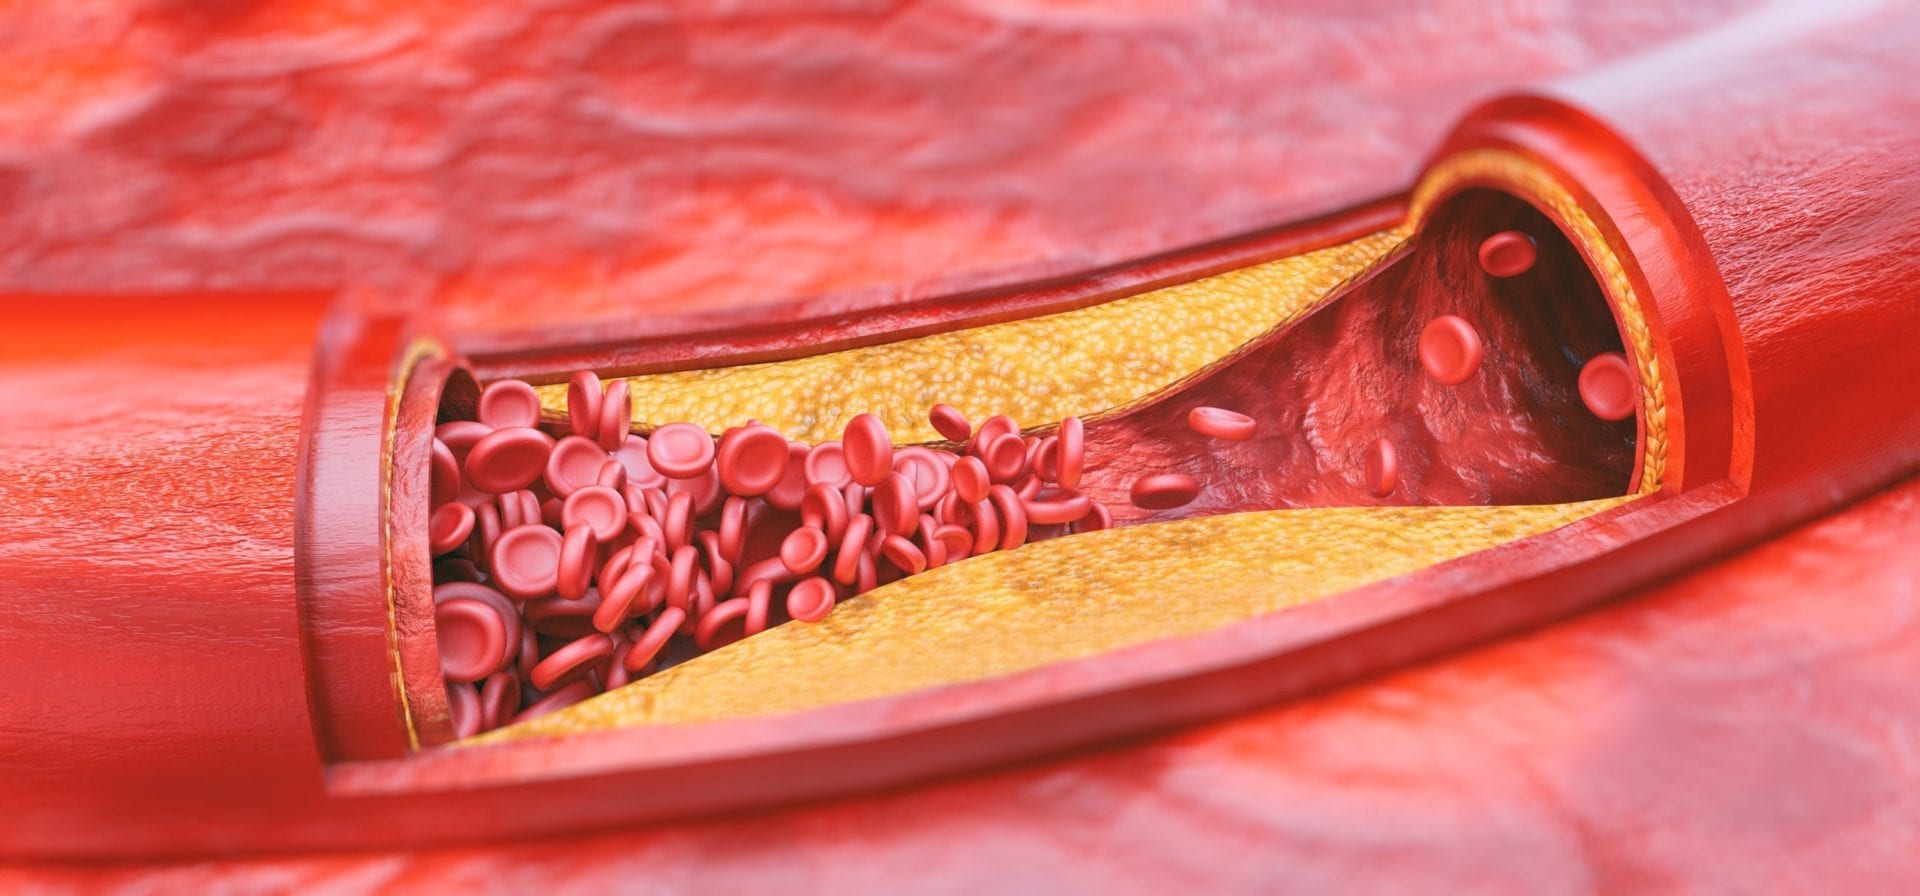 hdl and ldl cholesterol